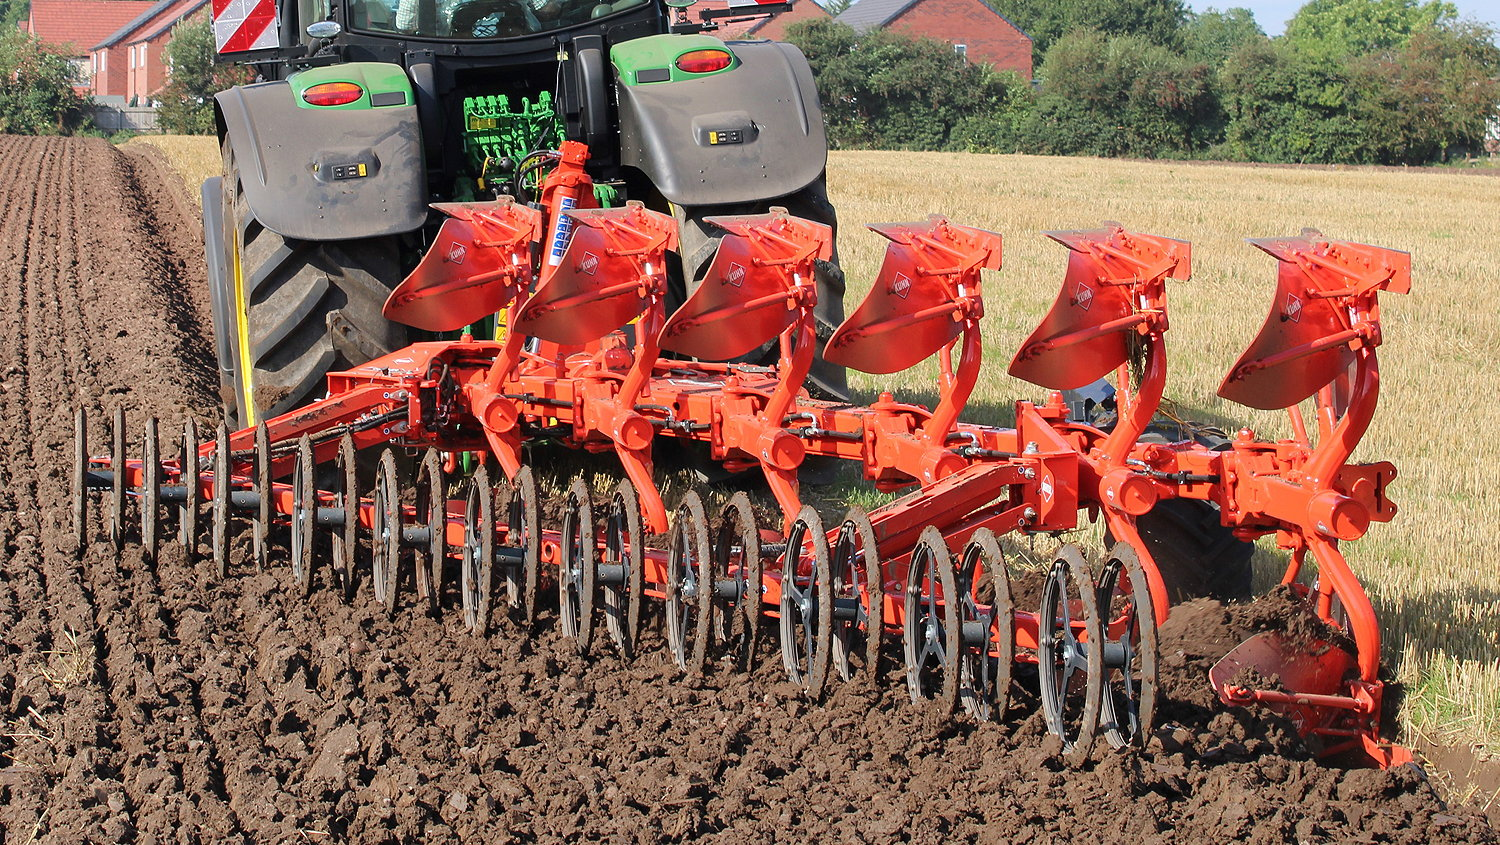 Kuhn's Duo-Liner operates totally independently of the primary cultivator to offer the possibility of a drill-ready seedbed in a single pass